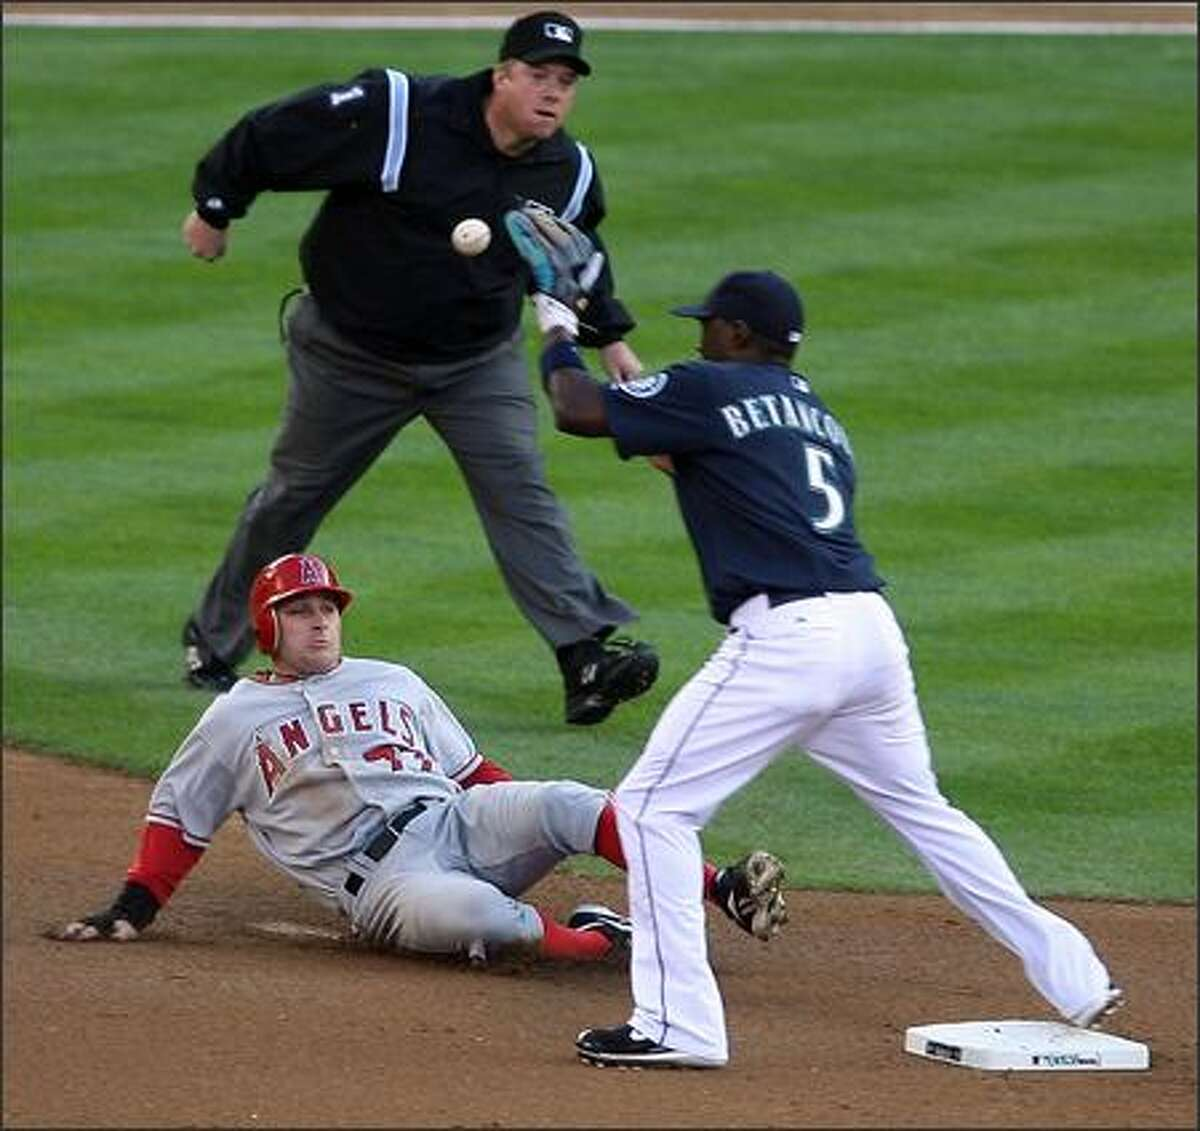 Seattle Mariners Yuniesky Betancourt takes Los Angeles Angels Reggie Willits out at second and turns the double play during for the final out of the first inning at Safeco Field in Seattle, Wash., Monday August 27, 2007. Second base umpire Bruce Dreckman observes the play.